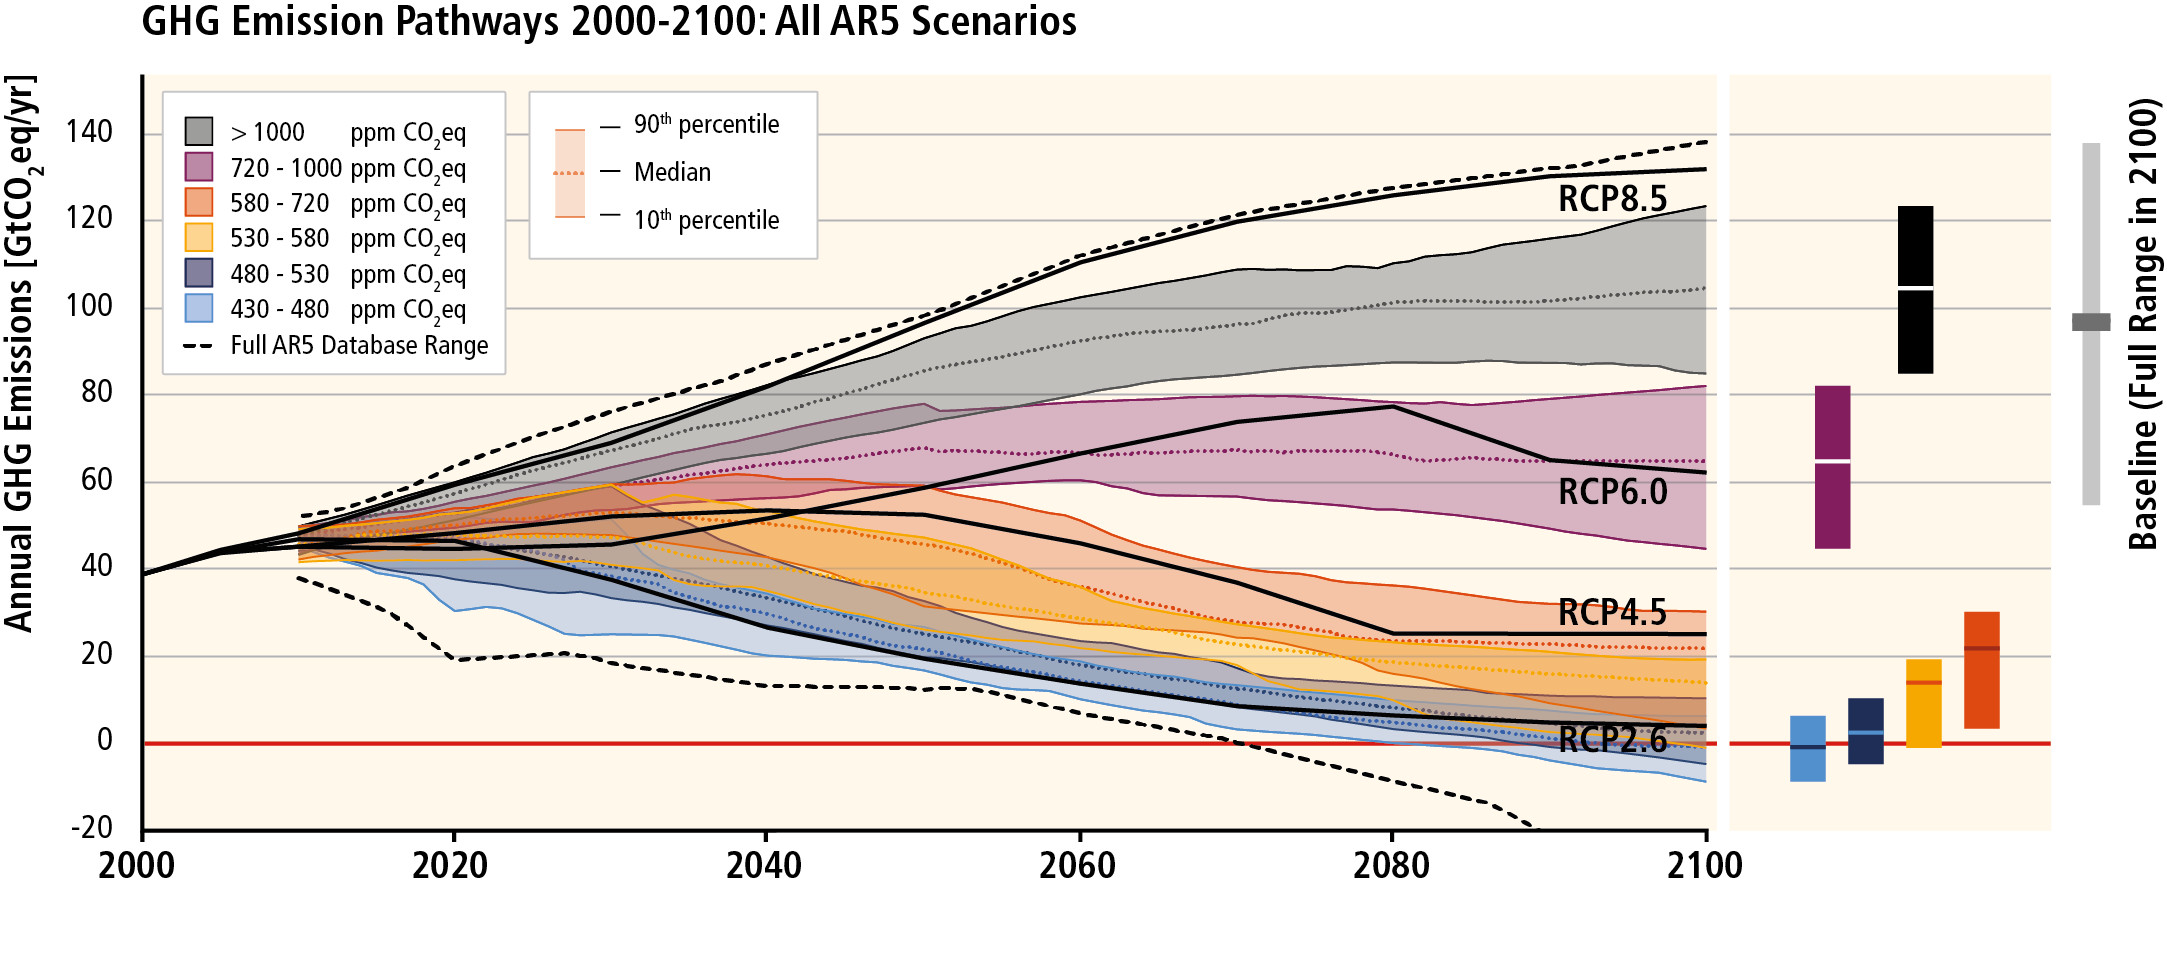 Future scenarios of an increase in the temperature, with regard to emissions of greenhouse gas and concentrations in the atmosphere